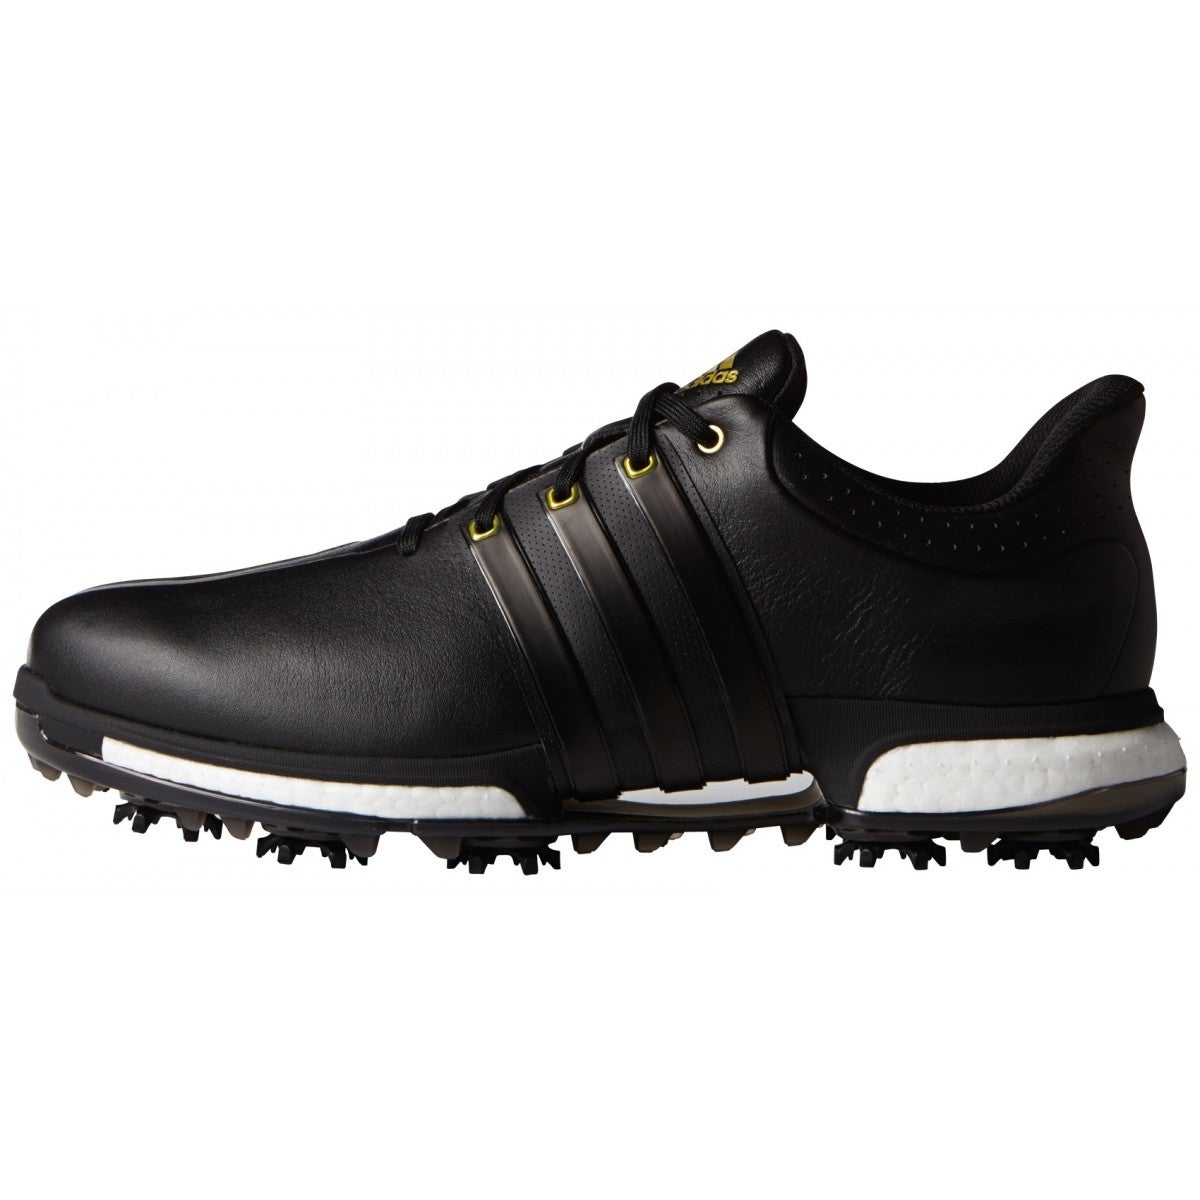 big sale f6fff 901e9 Adidas Golf Shoes   Find Great Golf Equipment Deals Shopping at Overstock